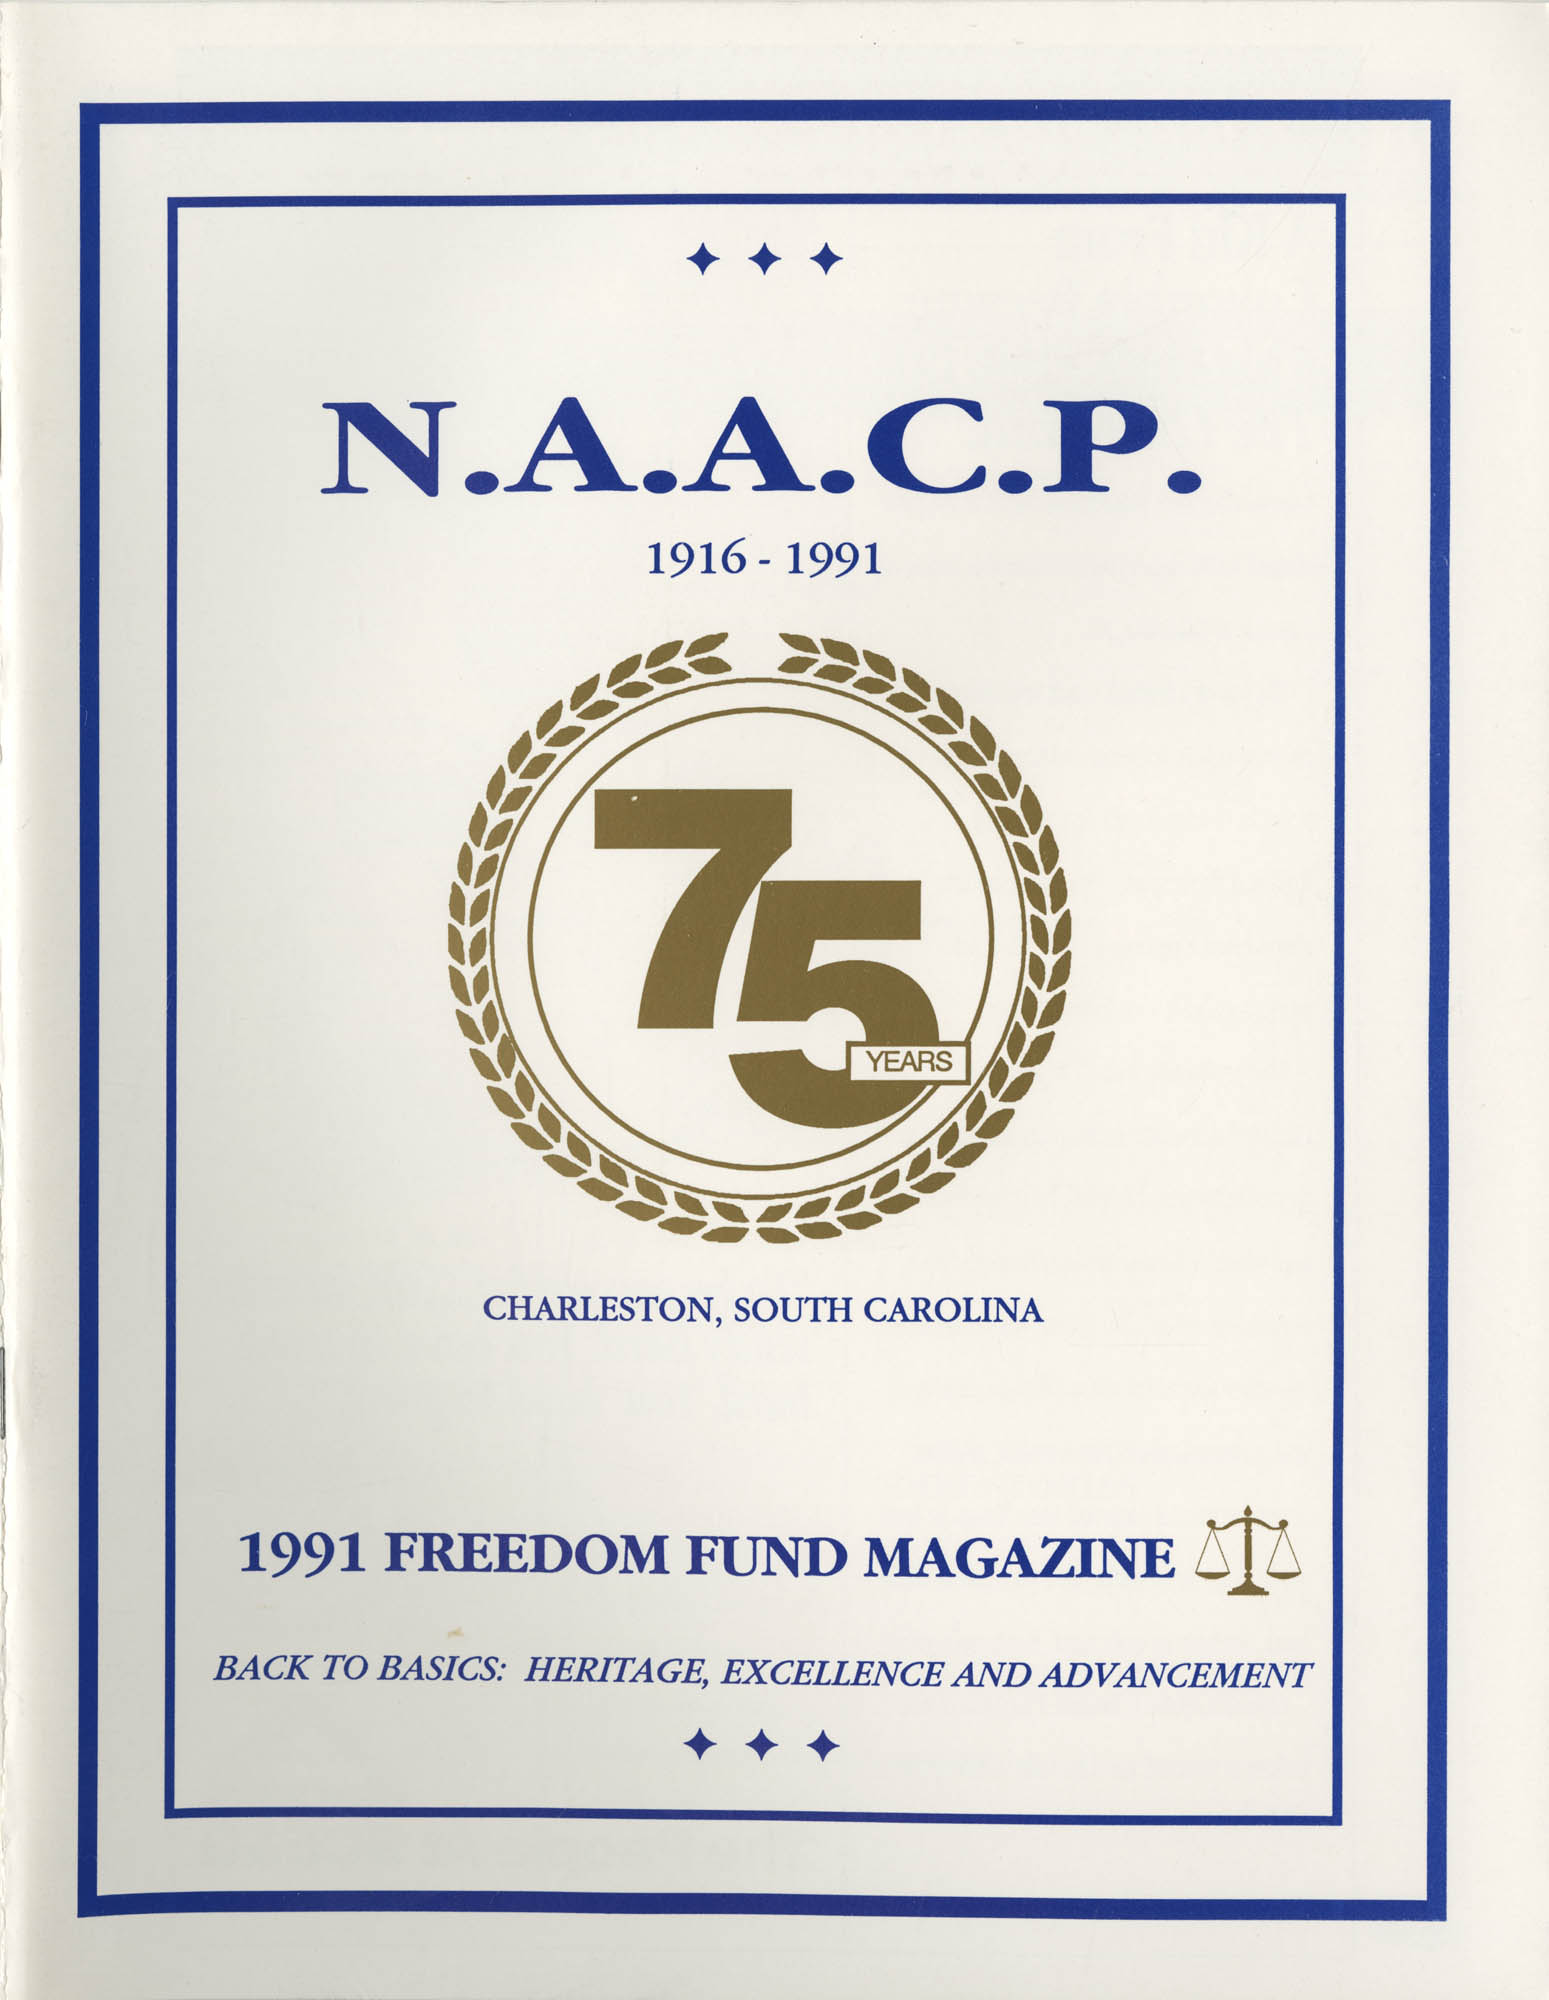 1991 Freedom Fund Magazine, Charleston Branch of the NAACP, Cover Page